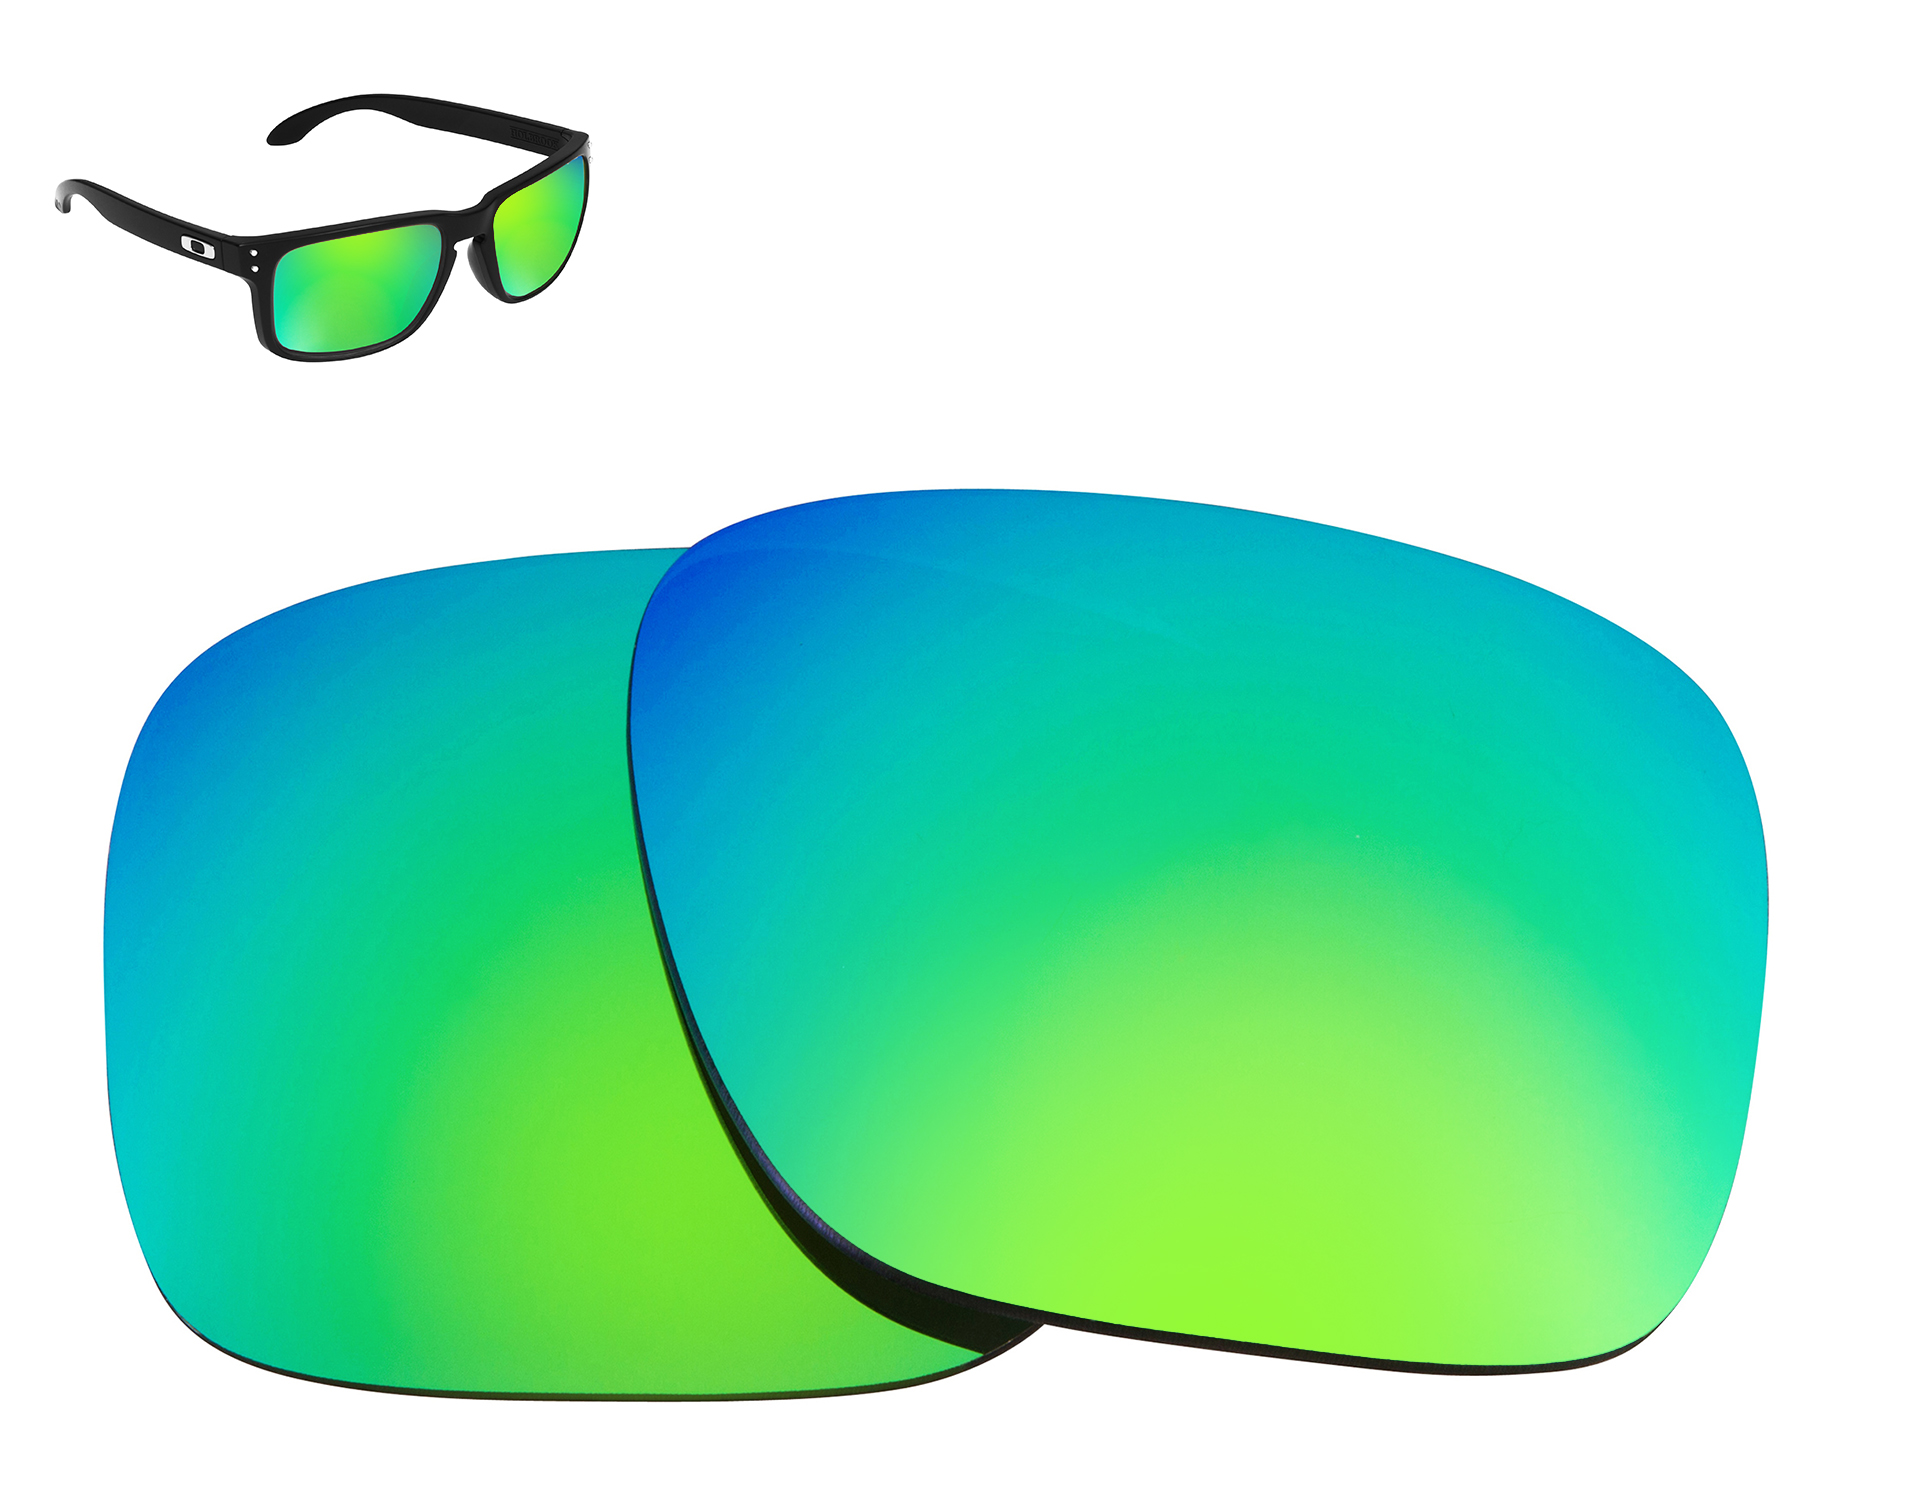 bb1867e283 HOLBROOK Replacement Lenses Green Mirror by SEEK fits OAKLEY ...